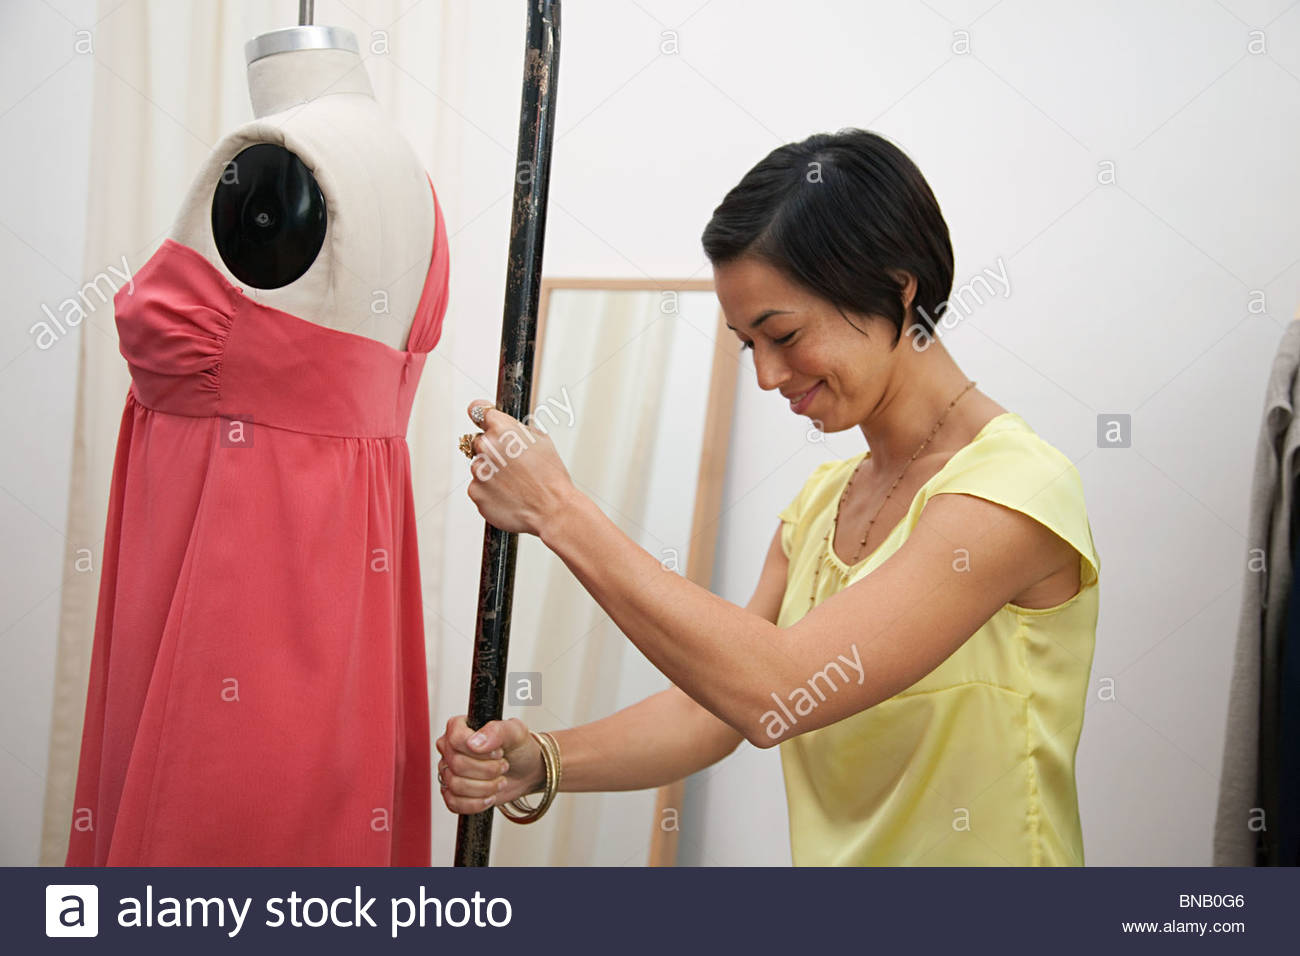 Shop assistant with mannequin - Stock Image